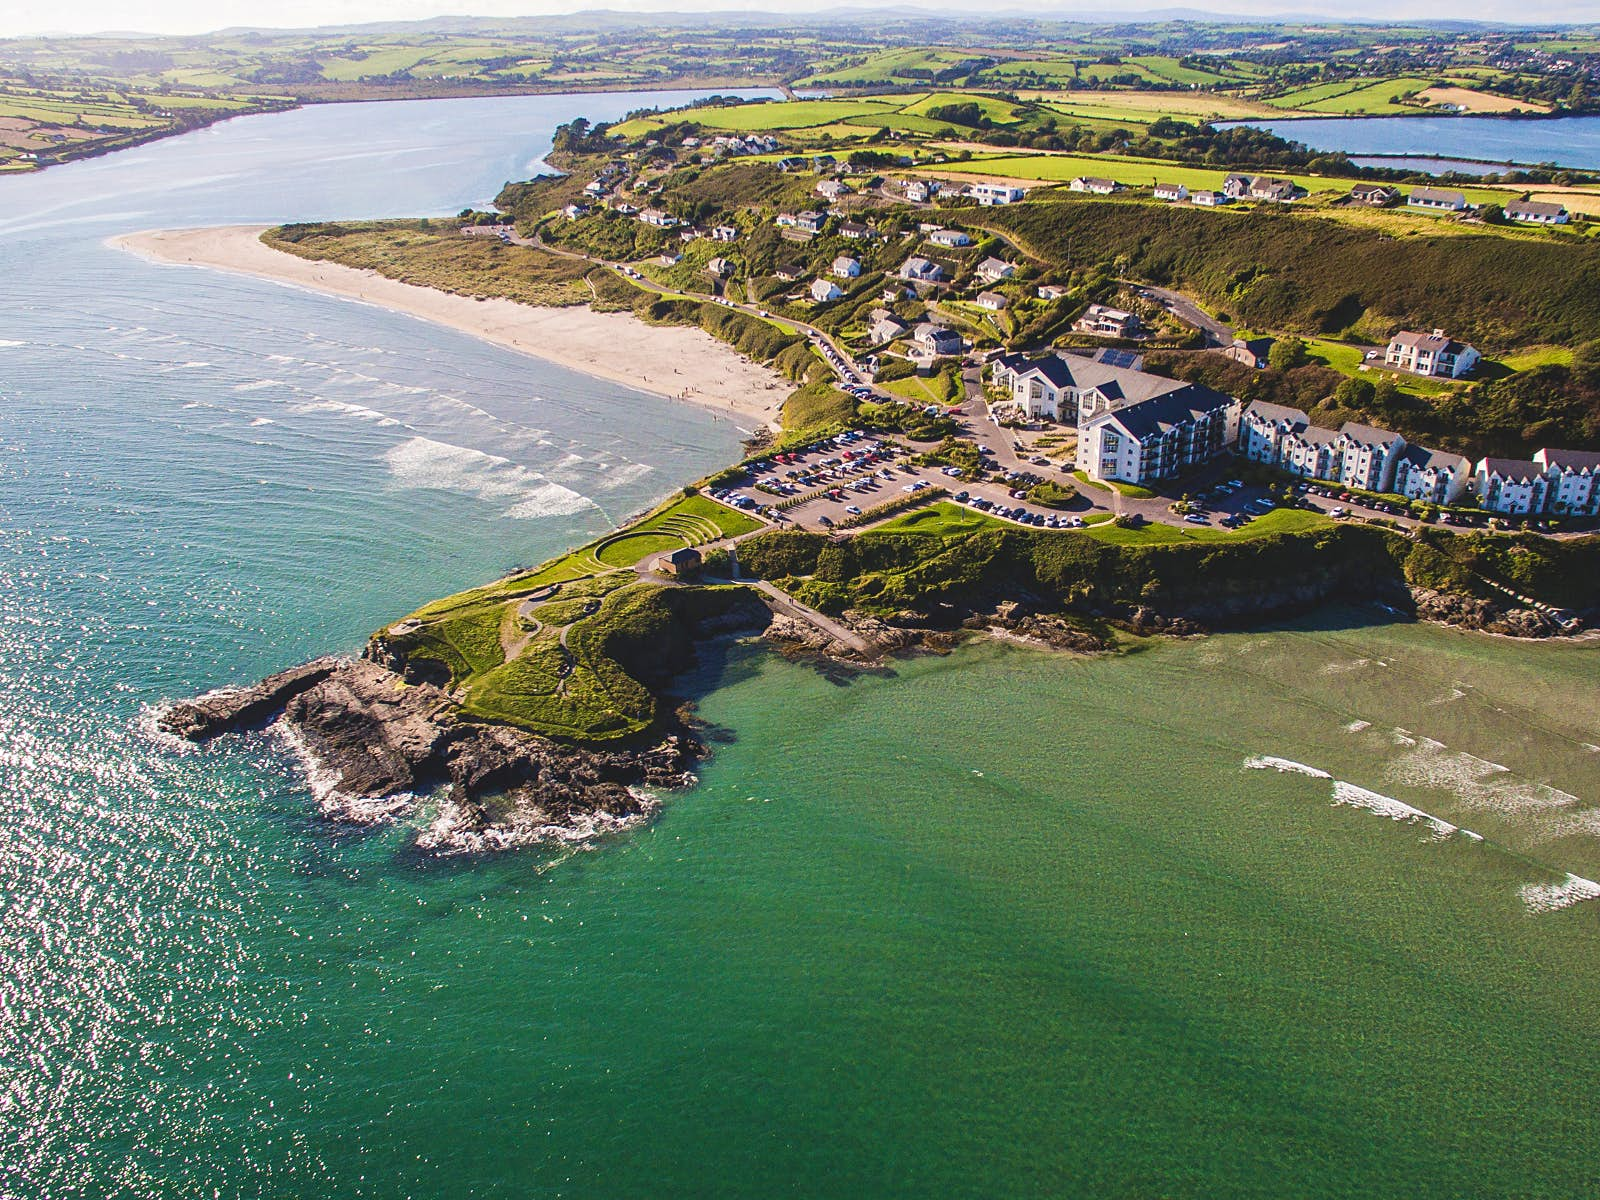 An aerial view over Inchydoney beach